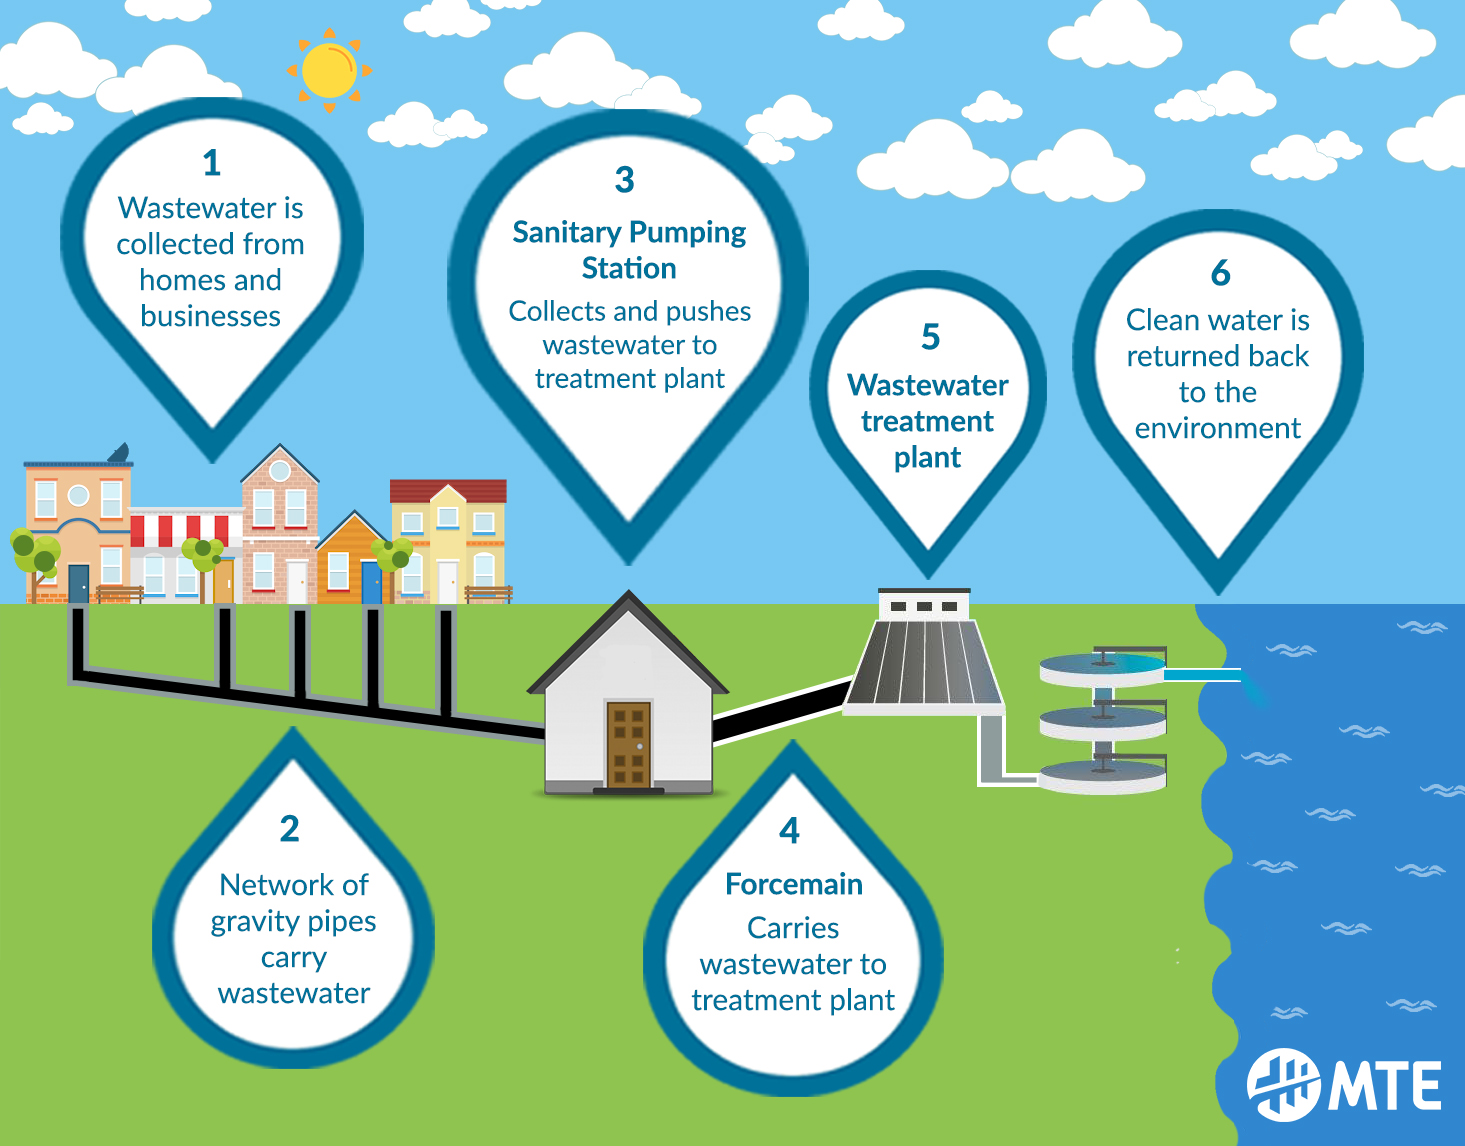 Infographic of a sanitary pumping station